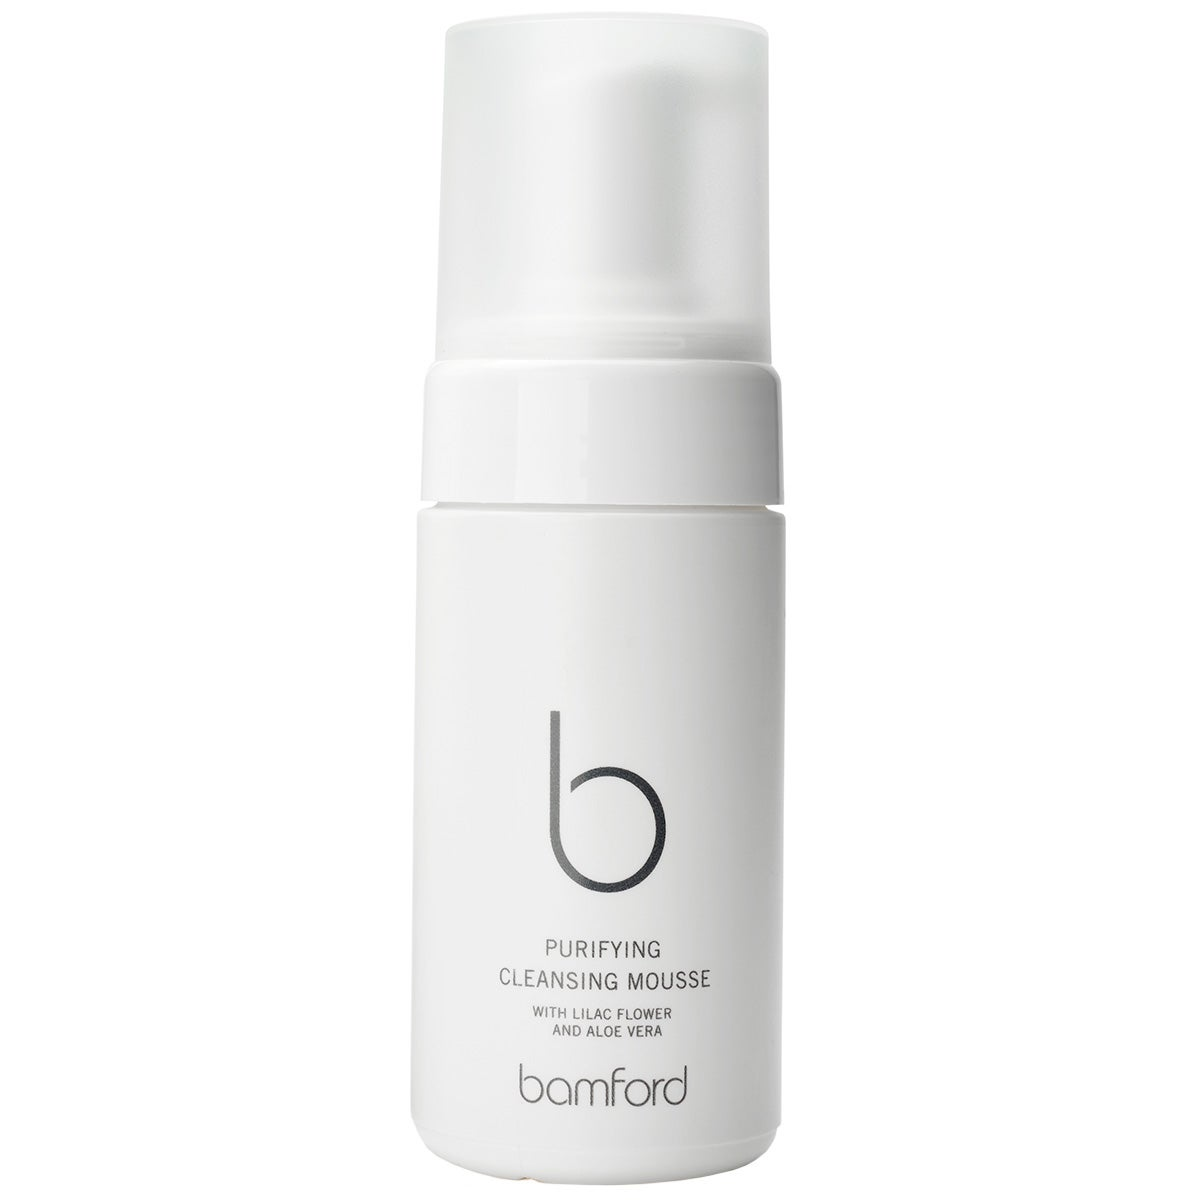 Bamford Purifying Cleansing Mousse